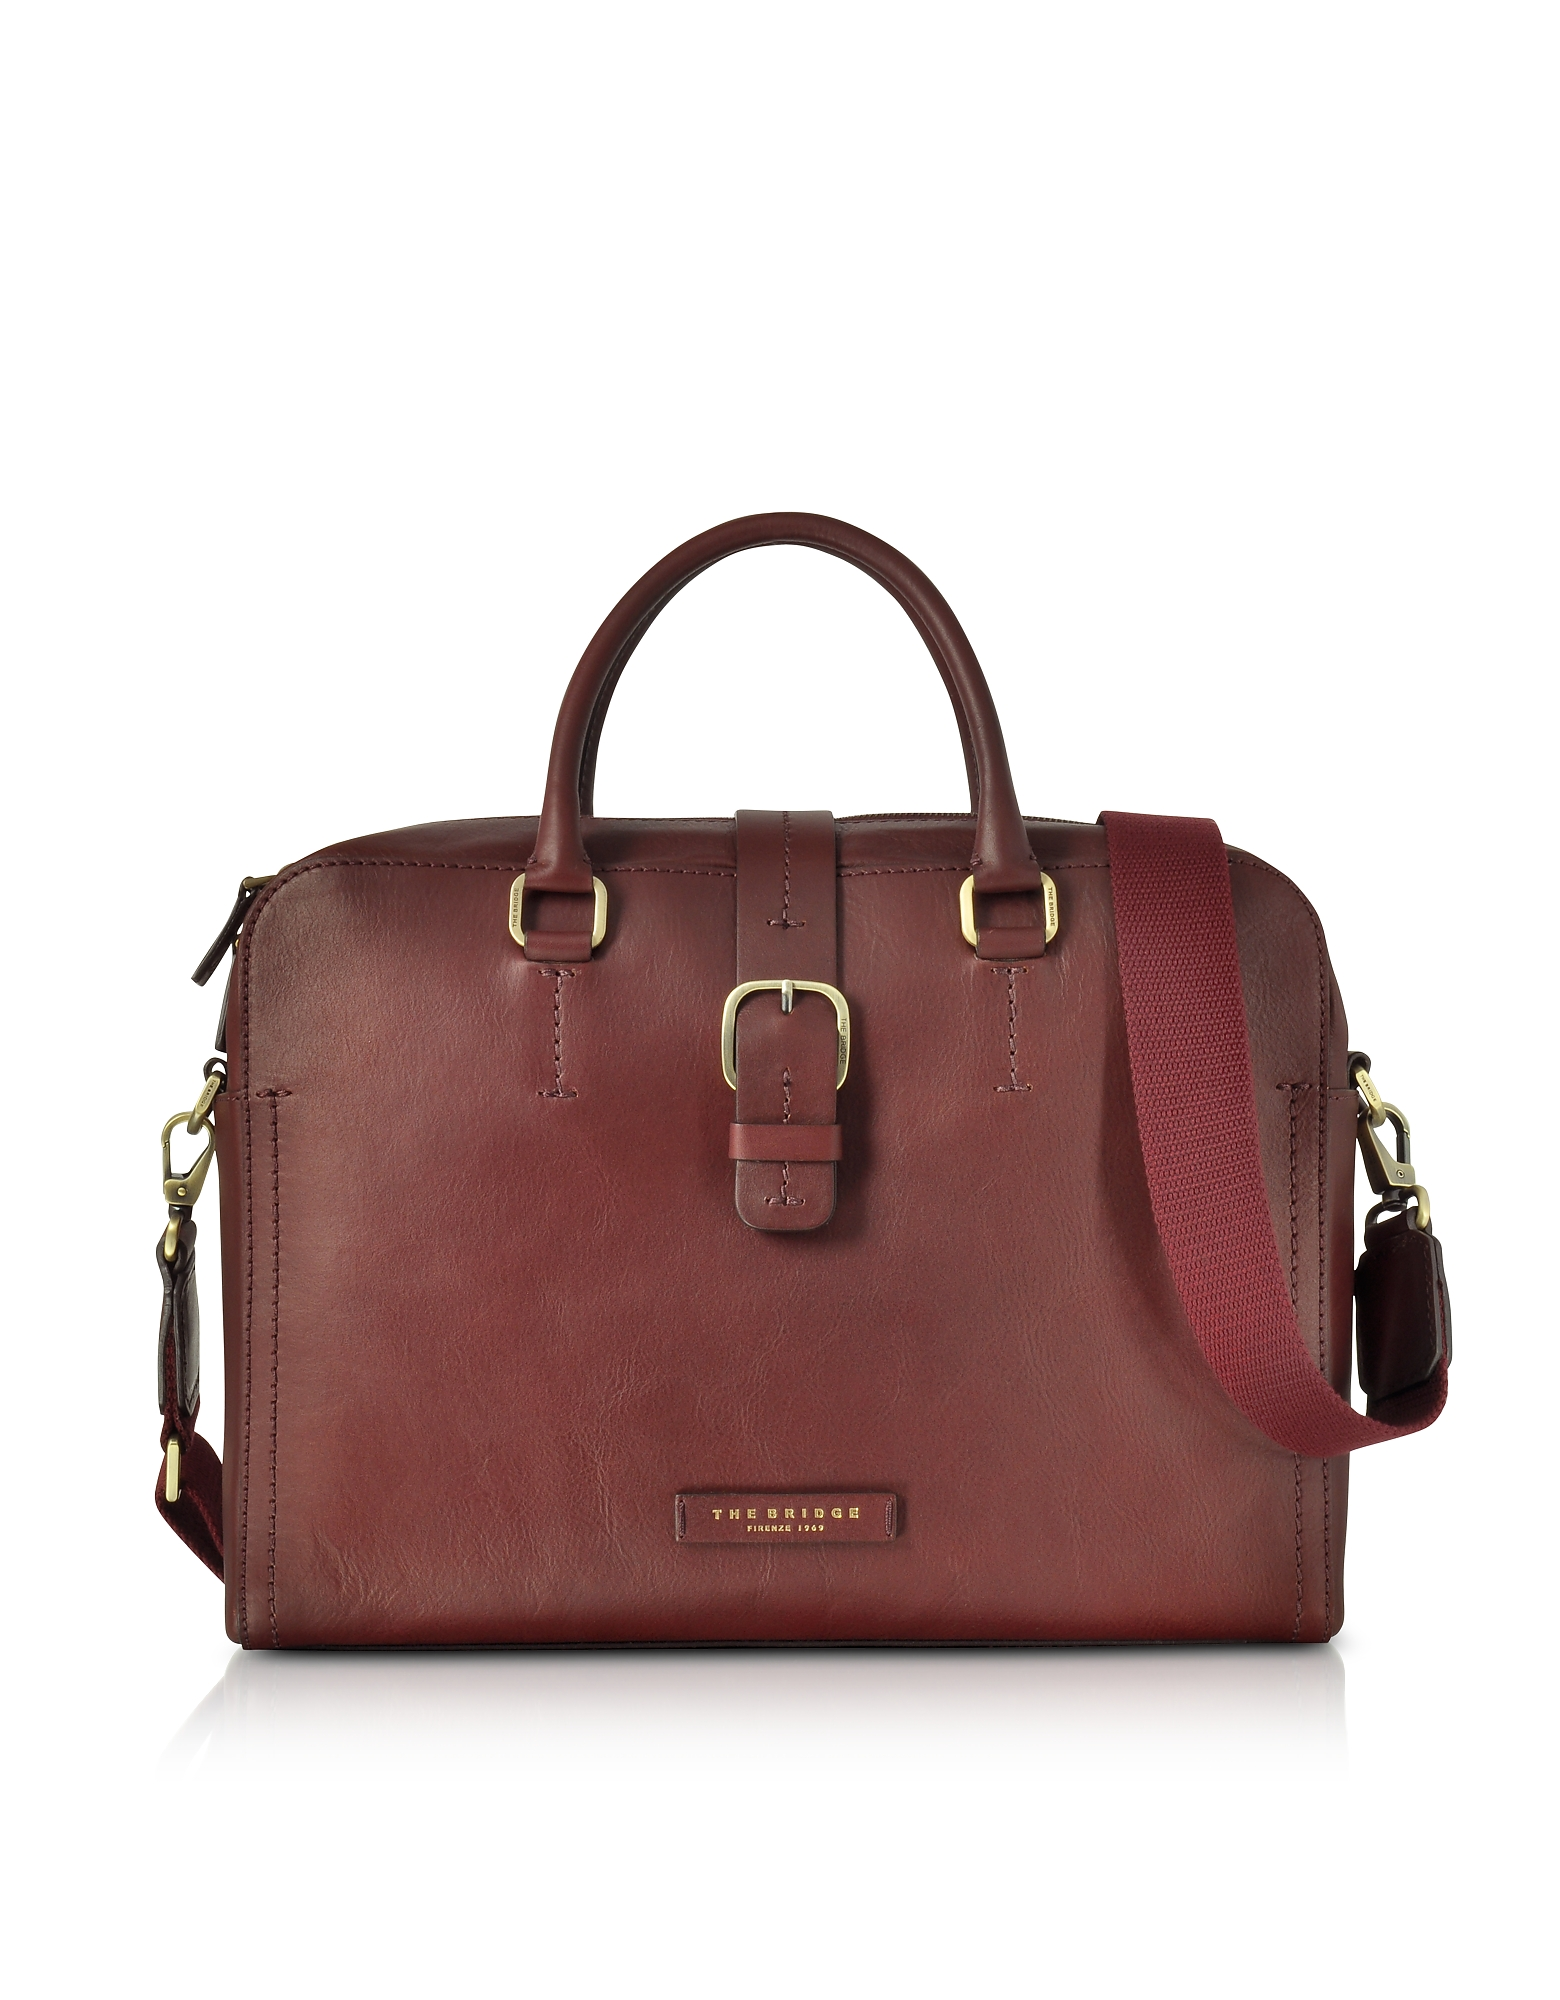 Image of The Bridge Designer Briefcases, Burgundy Leather Double Handle Briefcase w/Detachable Shoulder Strap